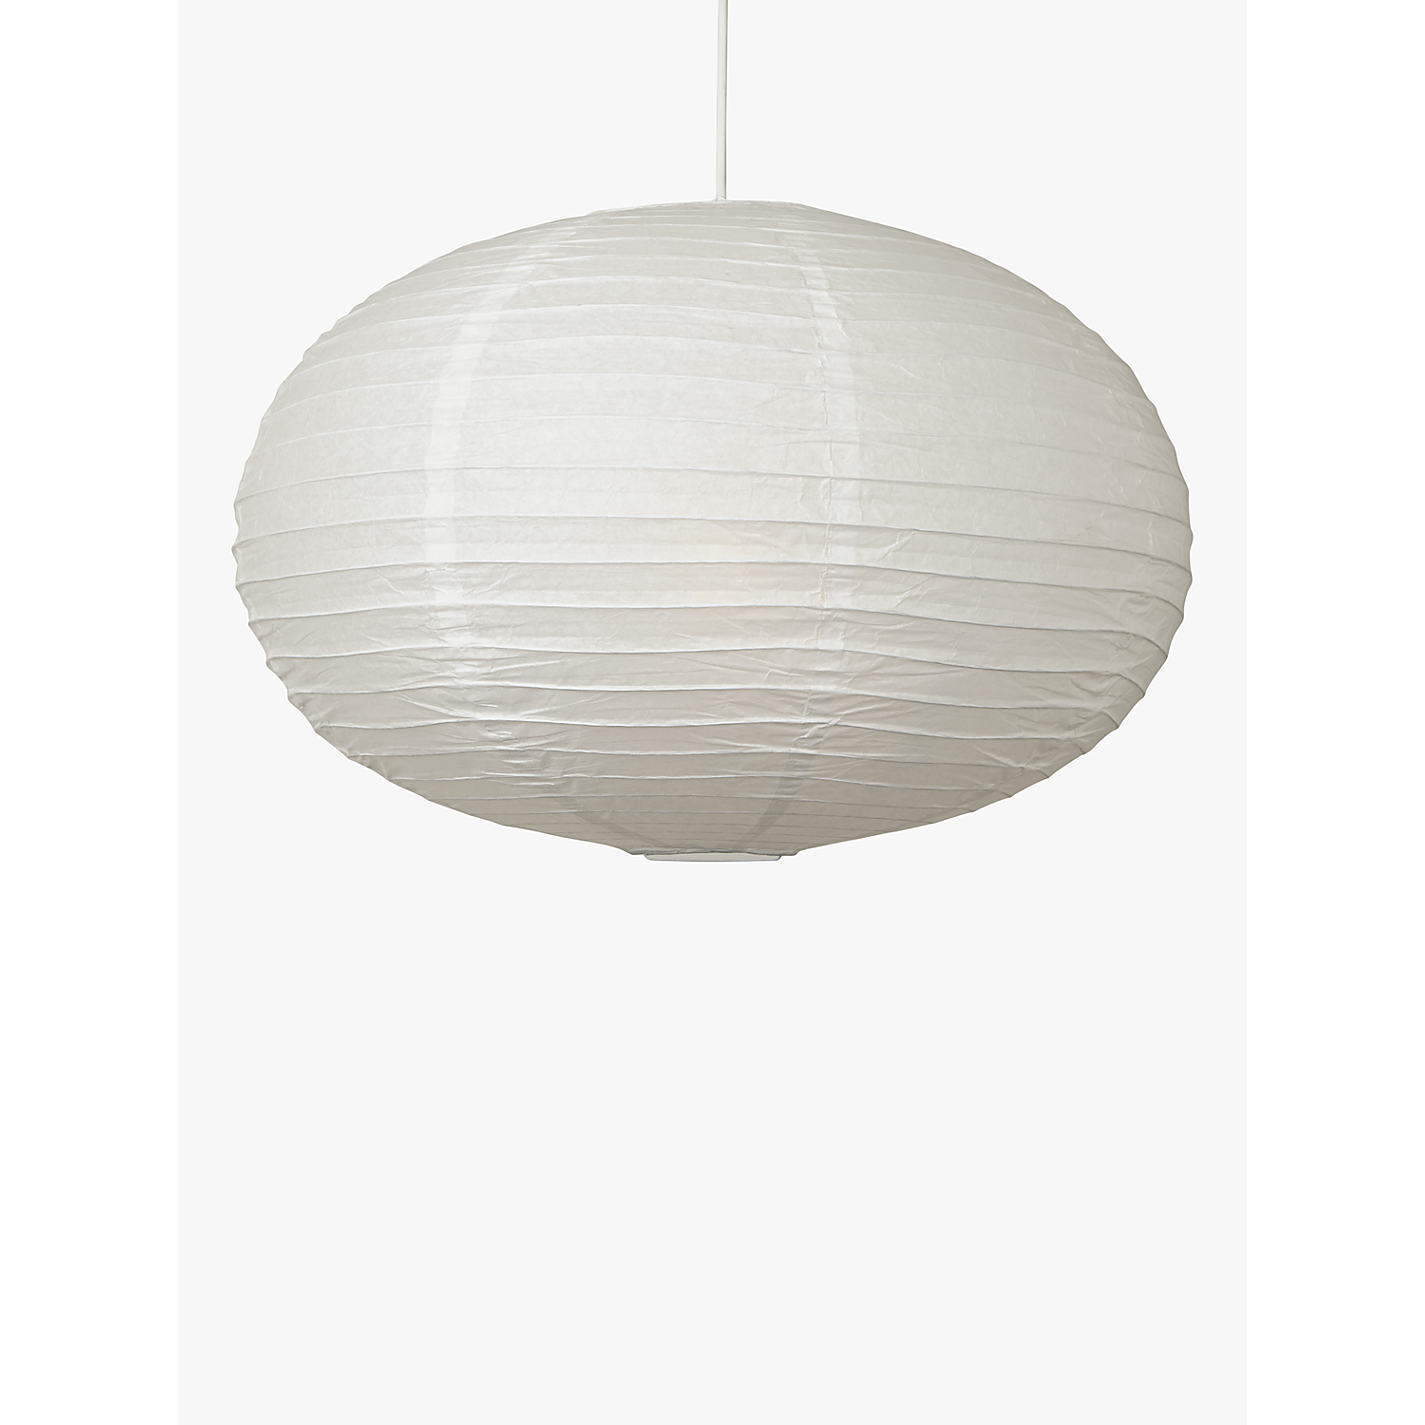 Buy house by john lewis easy to fit paper oval ceiling light buy house by john lewis easy to fit paper oval ceiling light white mozeypictures Images